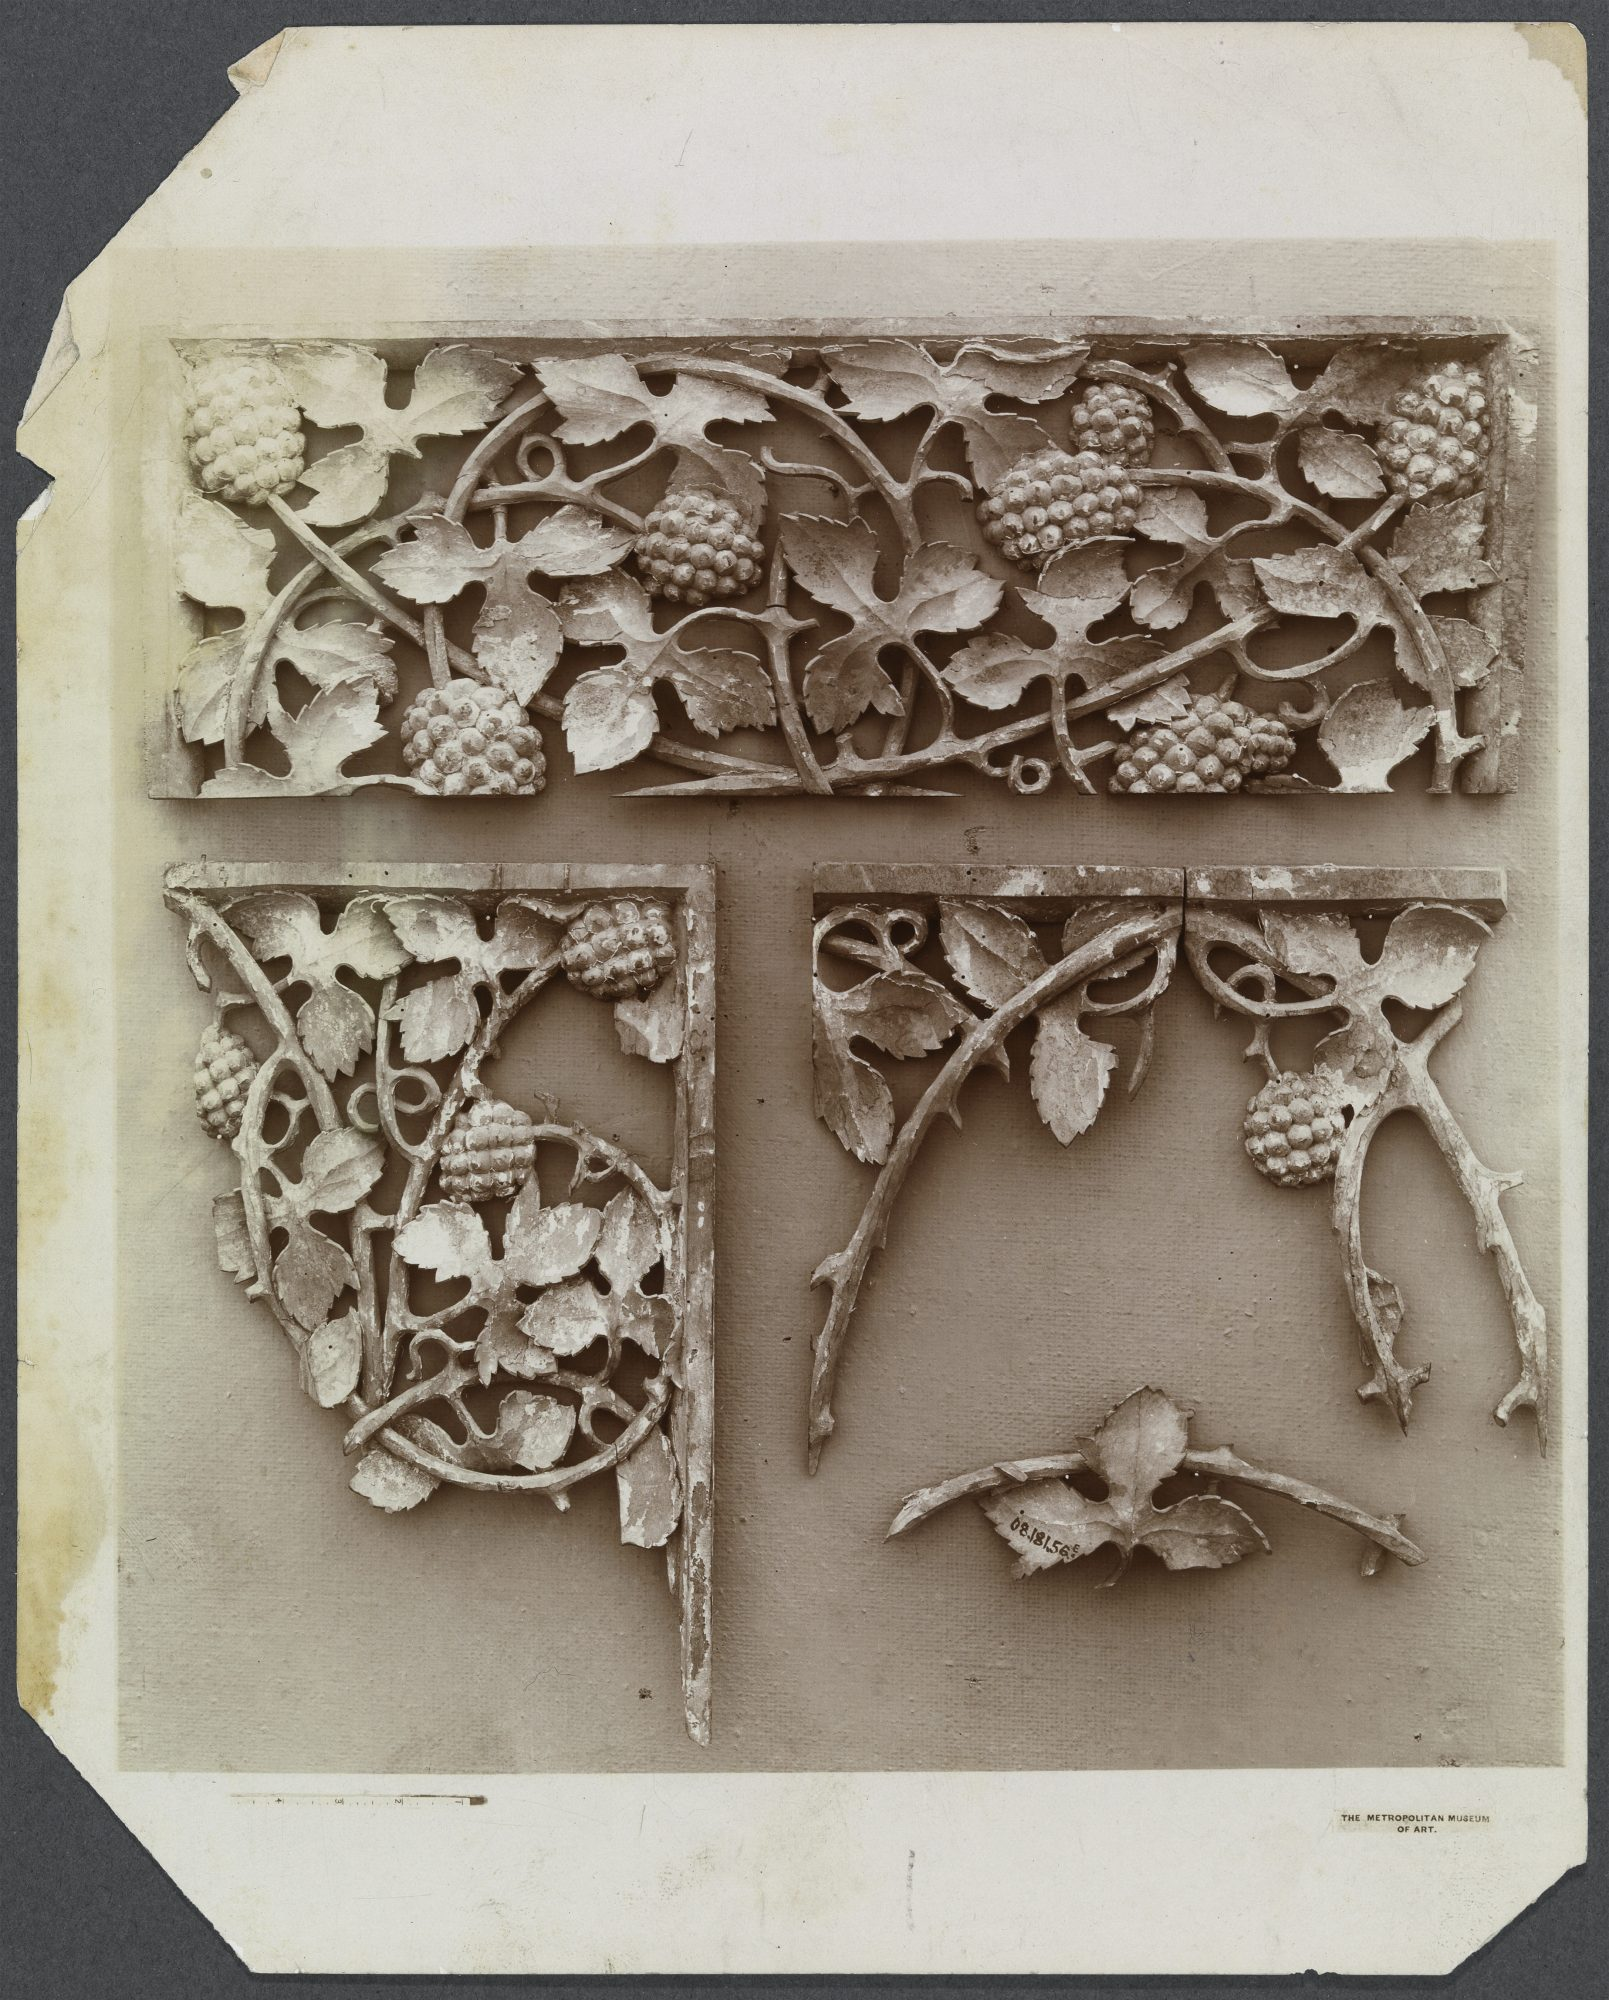 Unknown artist, The Metropolitan Museum of Art (serial no. 08.181.56E) Grapevine Fragments, 19th–20th century. Photograph, 10 x 8 1/8 in. Williams College Museum of Art, Prendergast Archive and Study Center, Gift of Mrs. Charles Prendergast, A.1.453